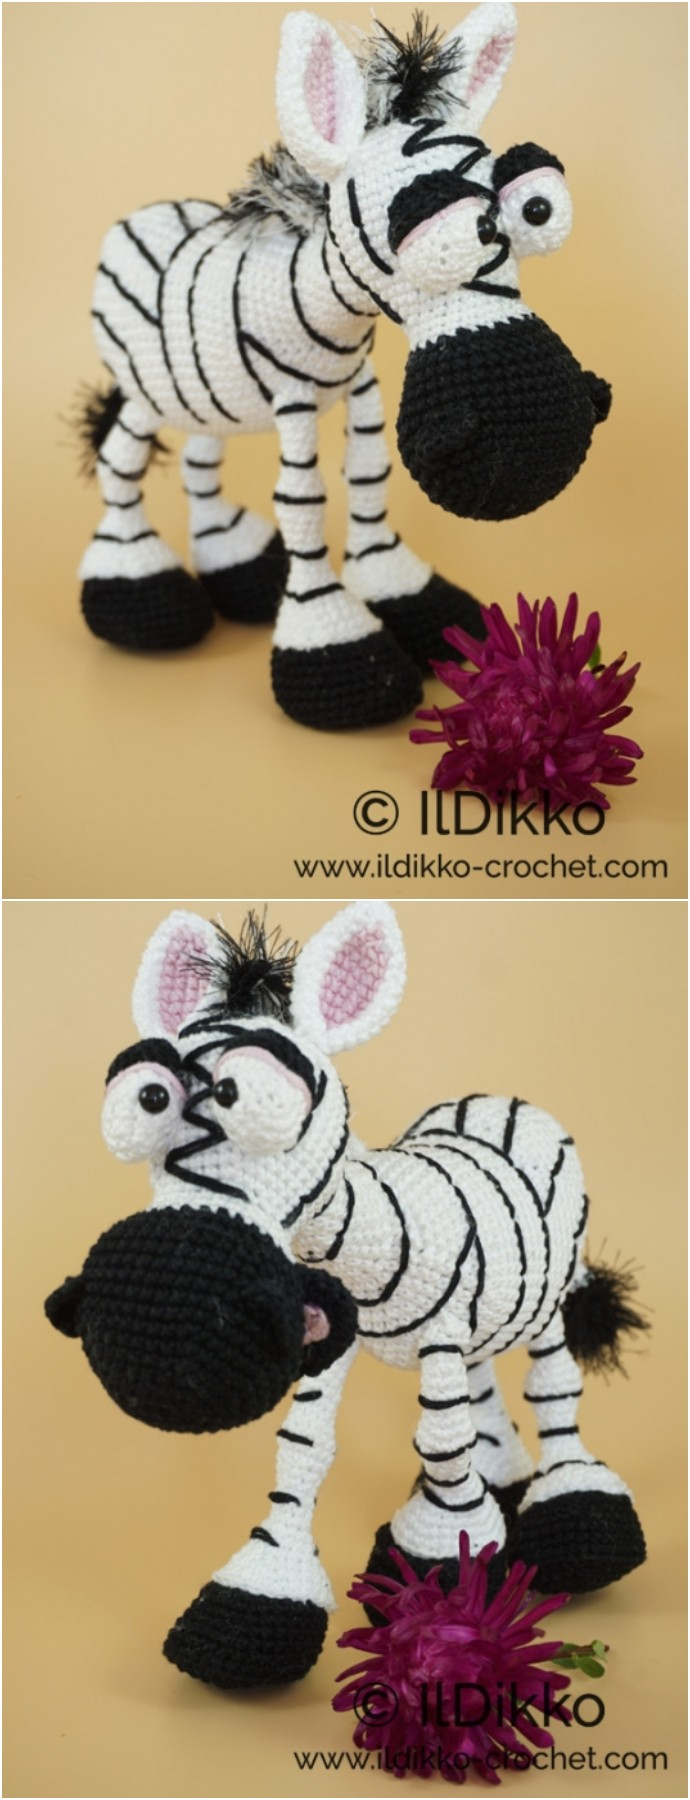 Zelda The Zebra Free Crochet